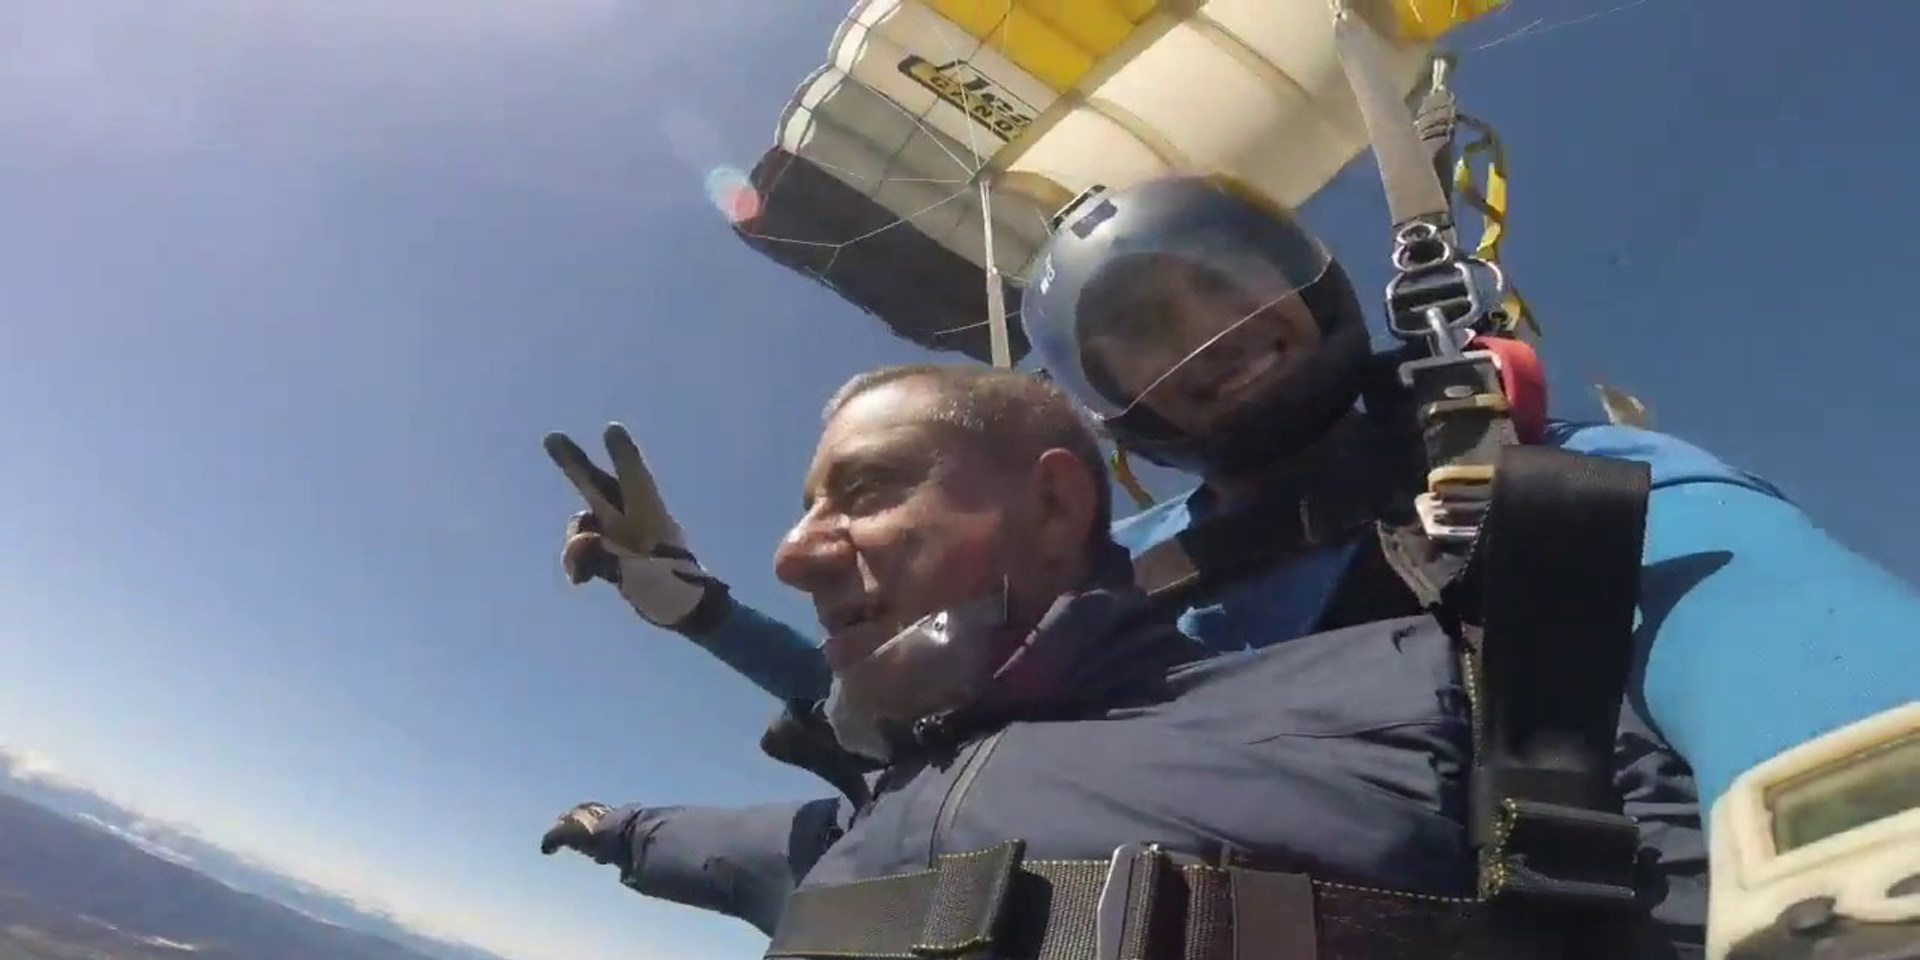 Skydive Hollister Jumps March 16 2018   California Monterey to SF Bay Area Skydiving Experiences